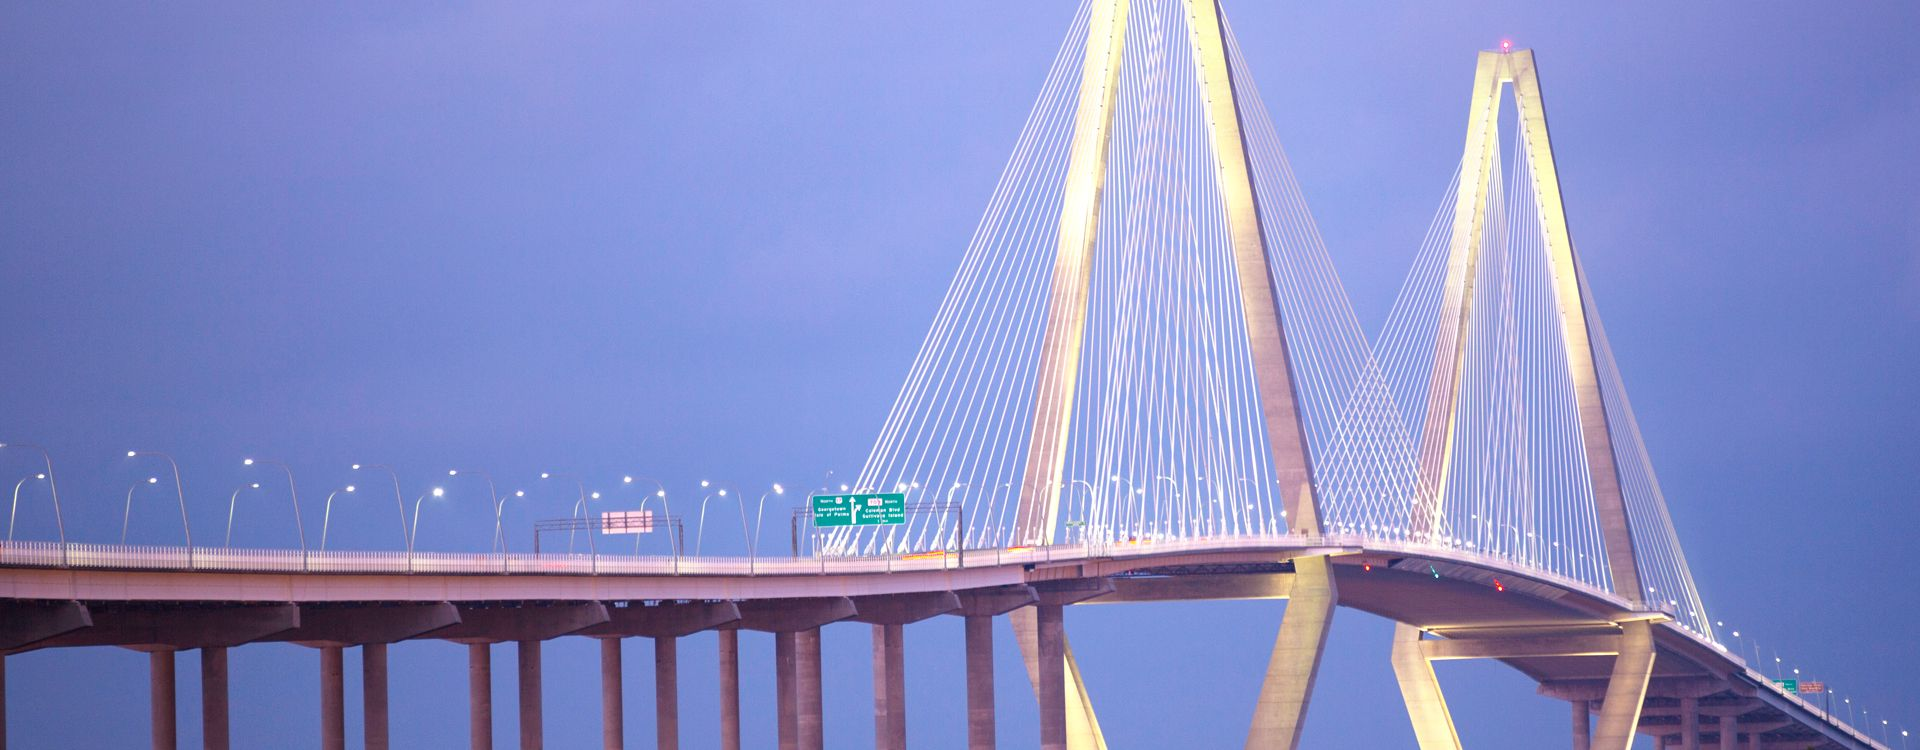 bnr-charleston-ravenel-bridge-south-carolina-signature-bridge